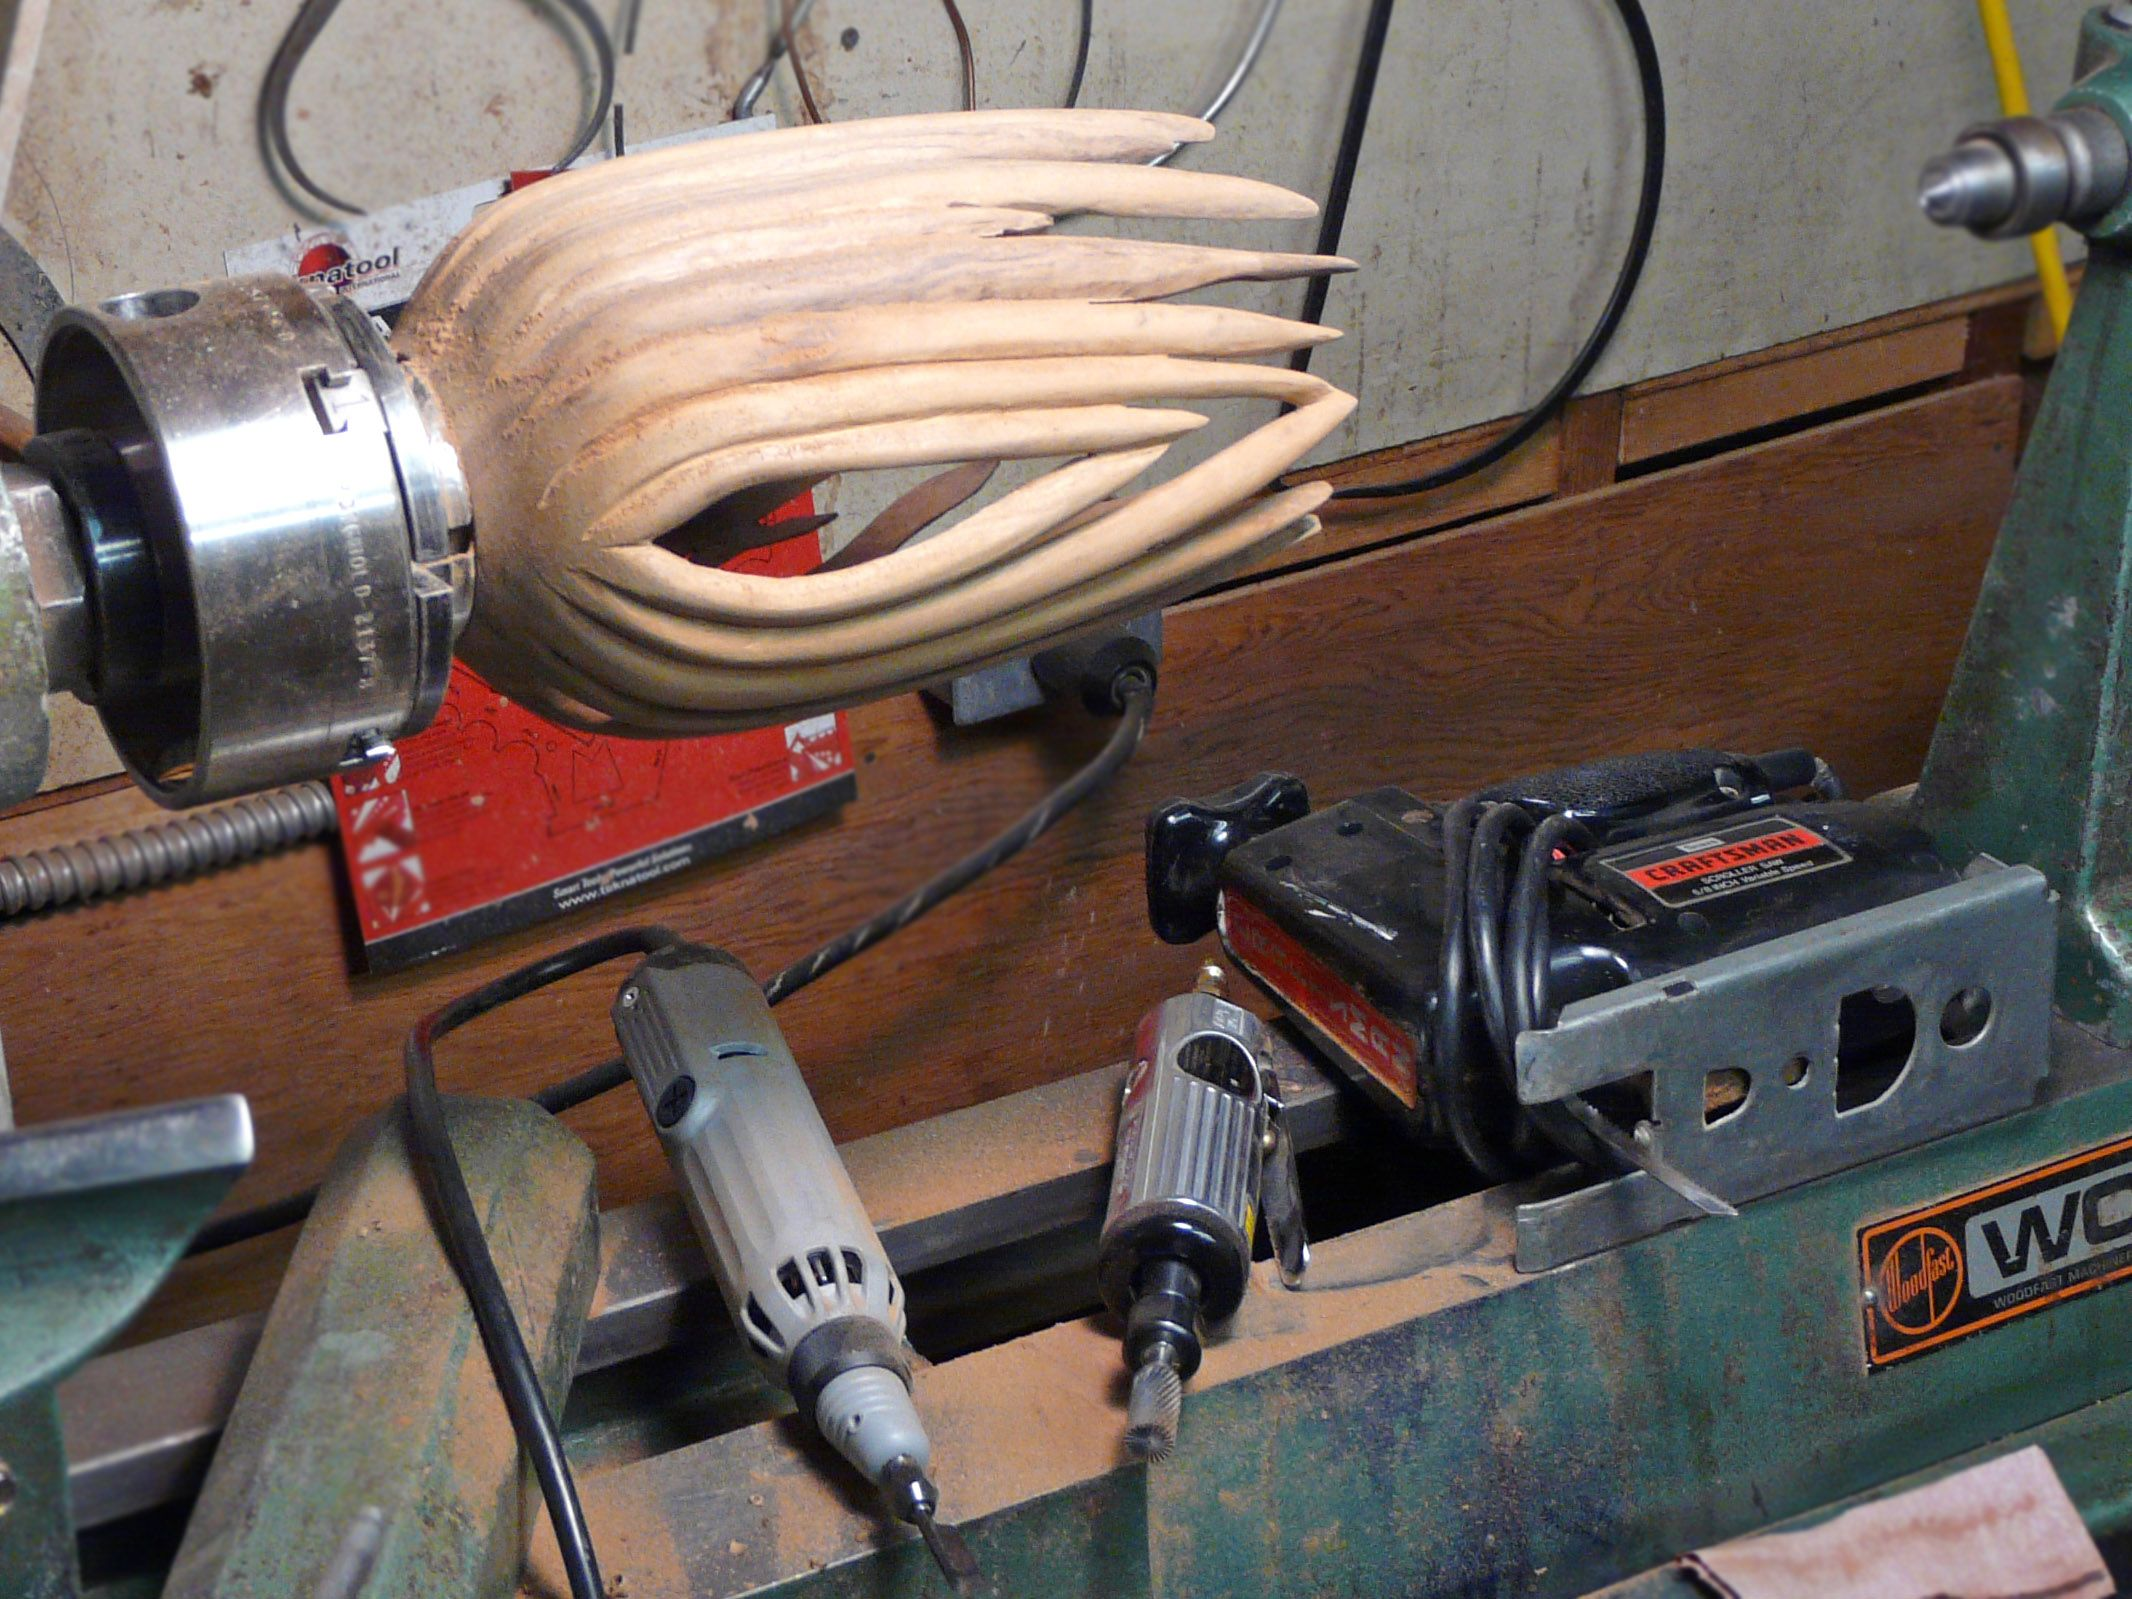 Cool Machines To Build Wood Lathe Turning Projects Lathe Wood Projects Ideas